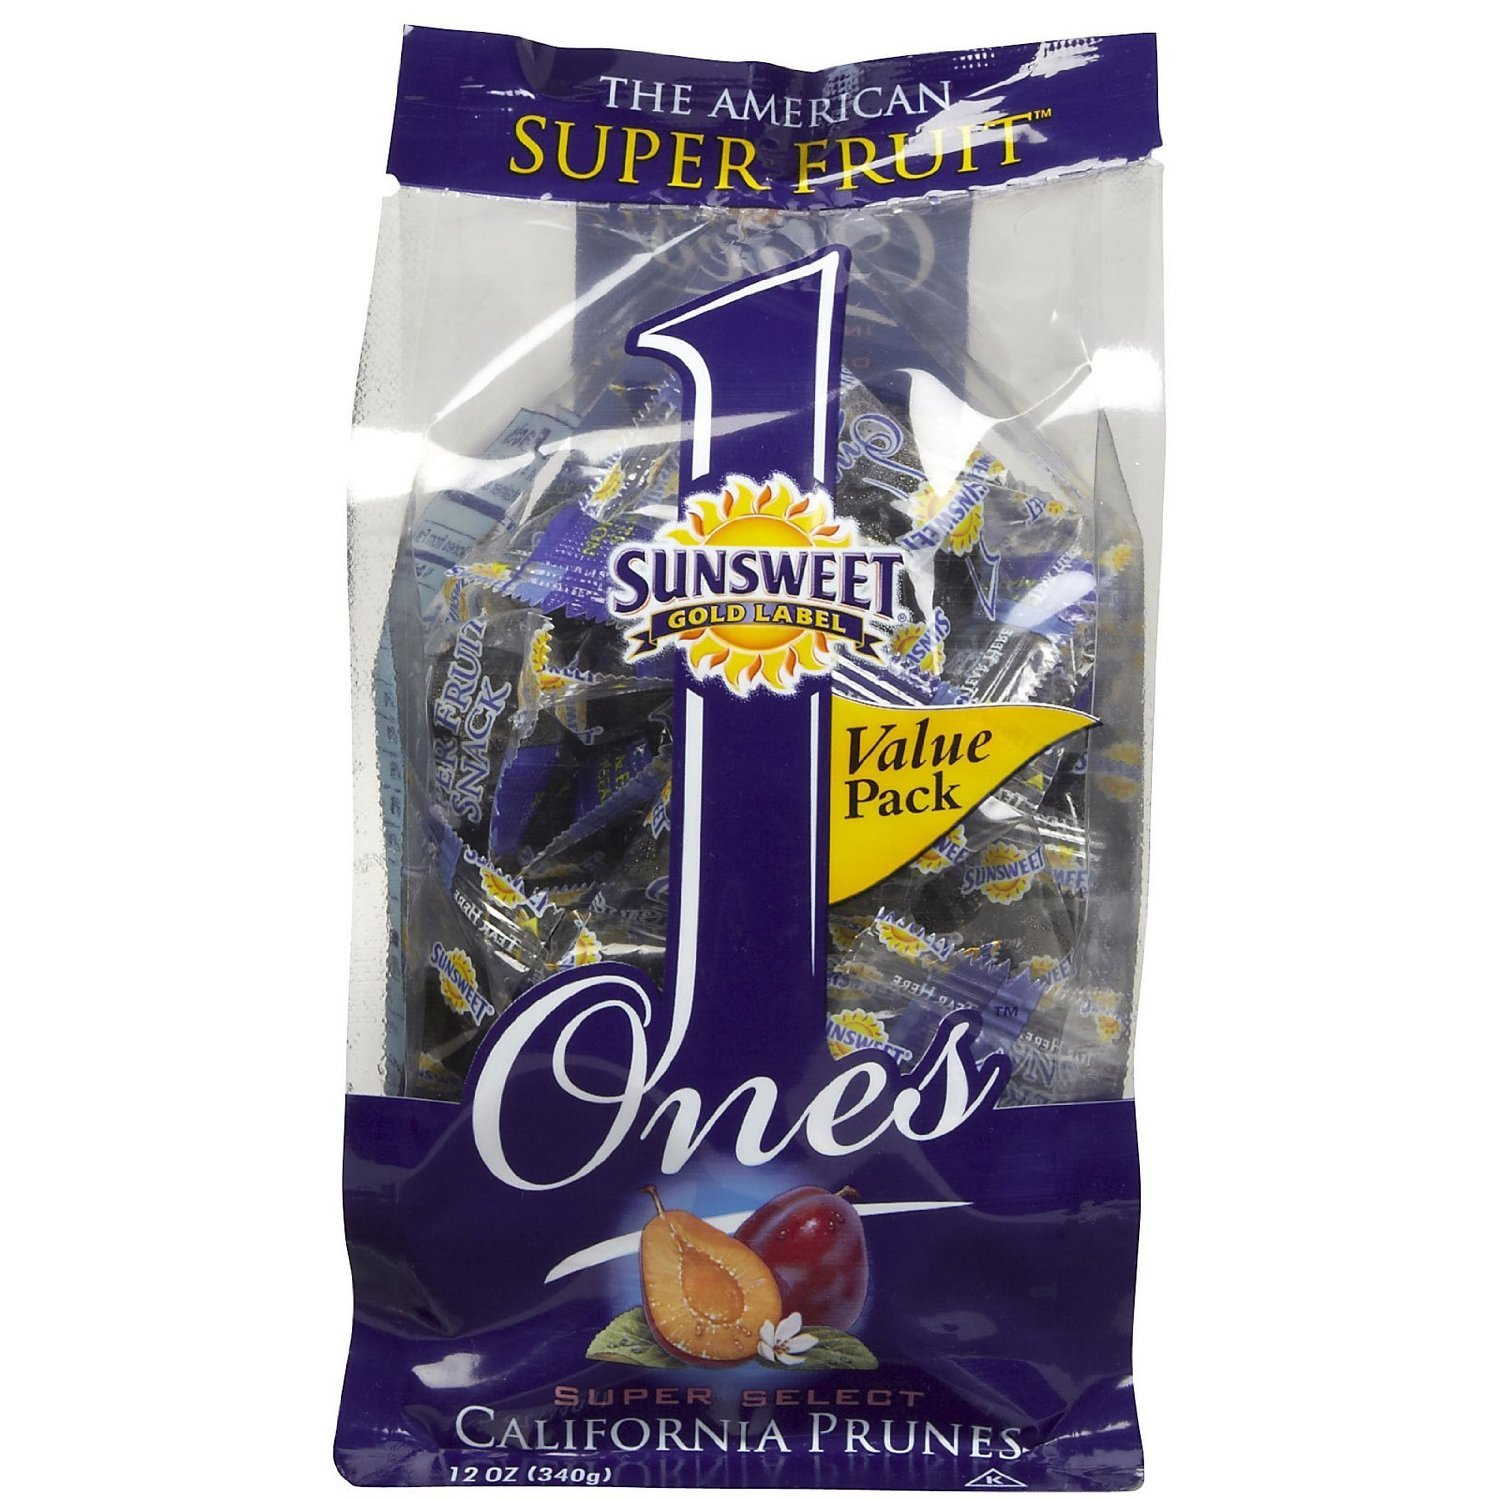 Sunsweet Gold Label Ones Super Select California Prunes 12 OZ (Pack of 6)